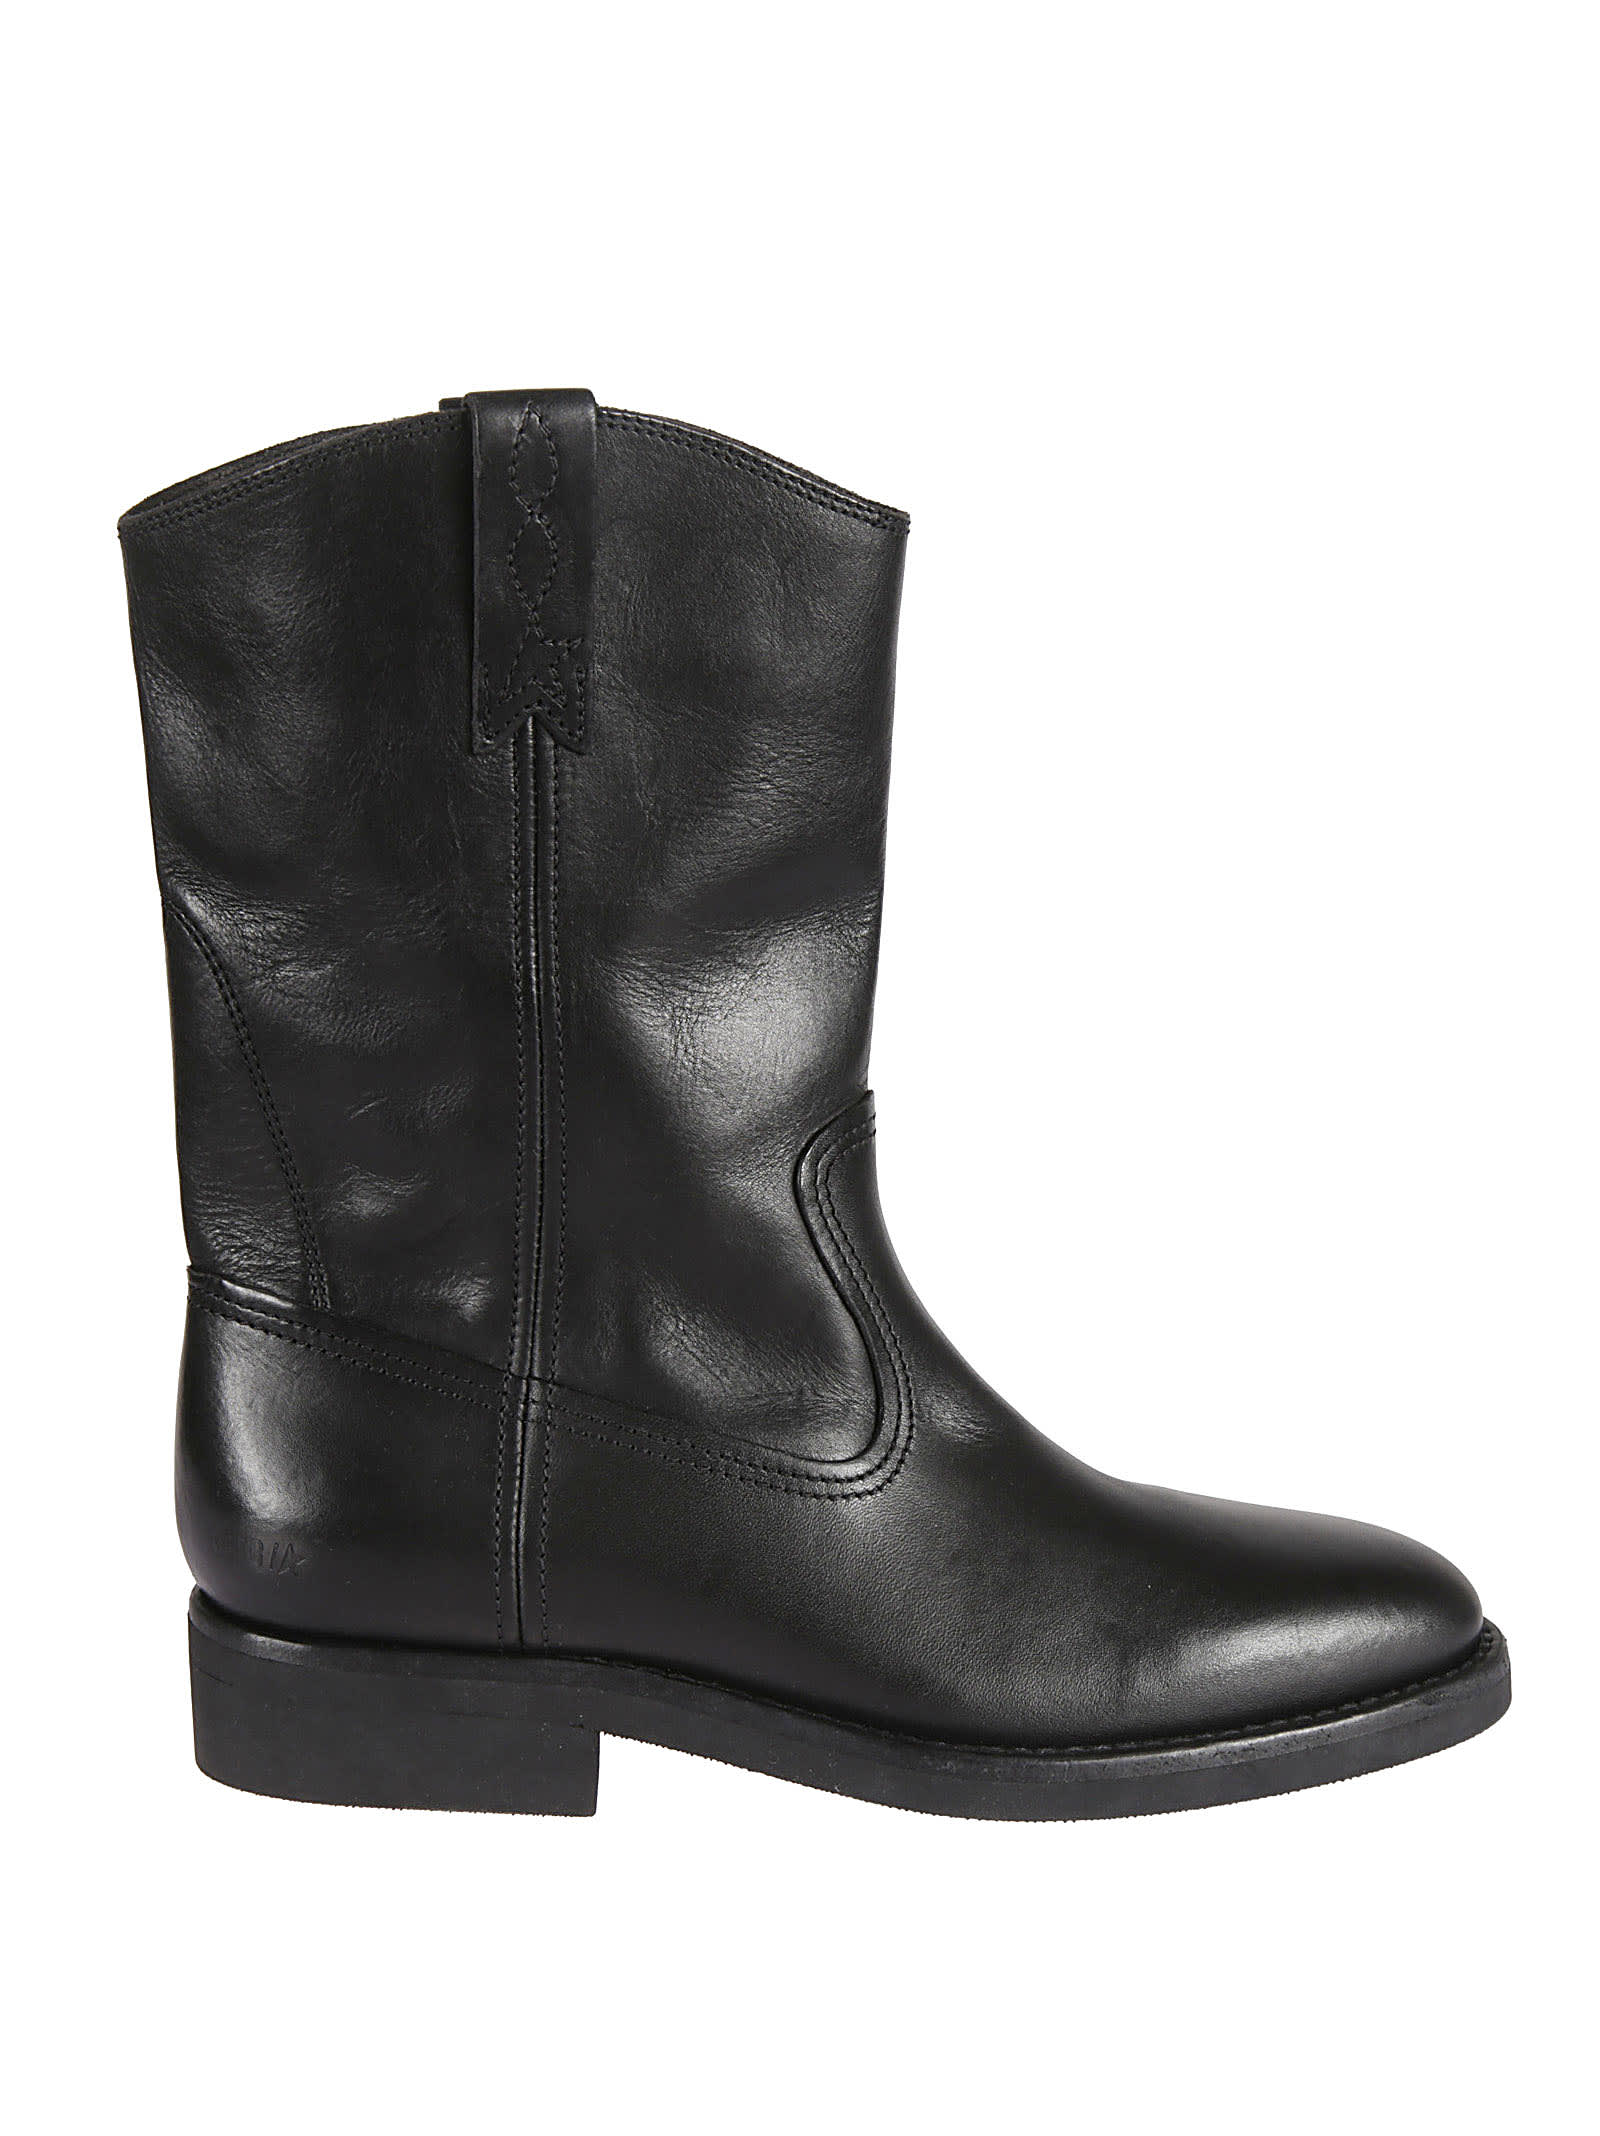 Buy Golden Goose Biker Boots online, shop Golden Goose shoes with free shipping